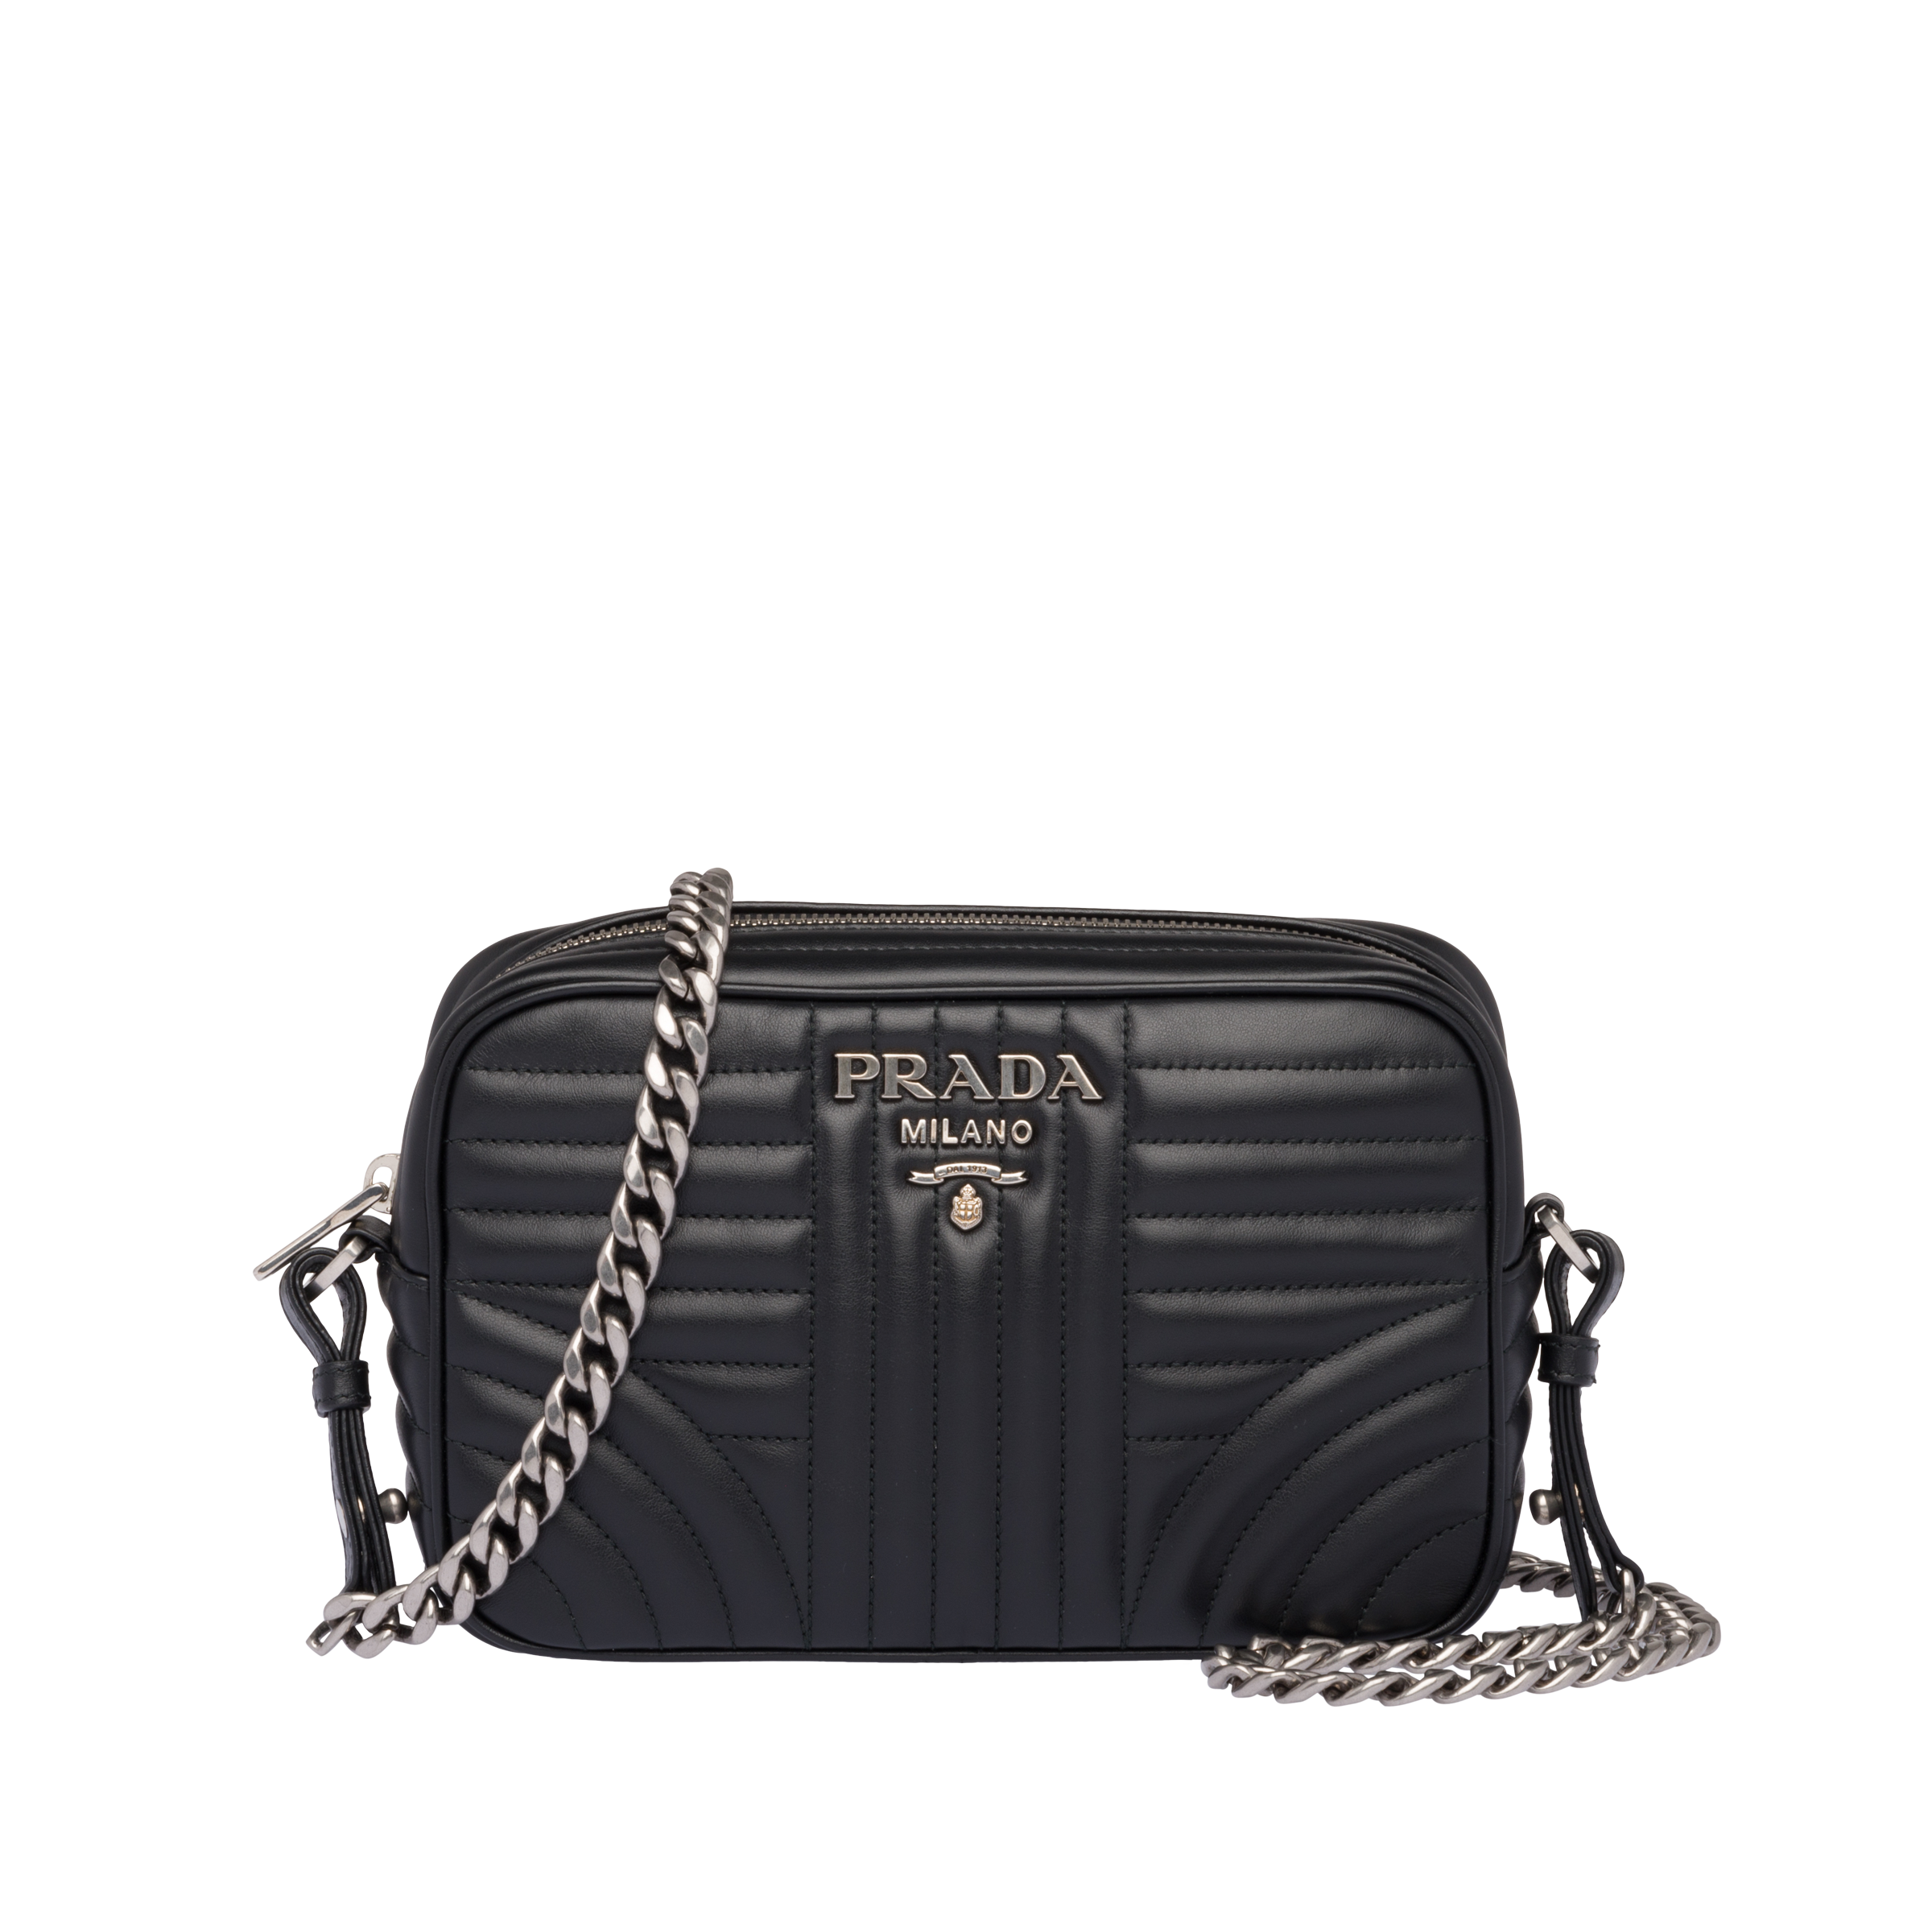 76887a190a81 Prada Diagramme leather cross-body bag